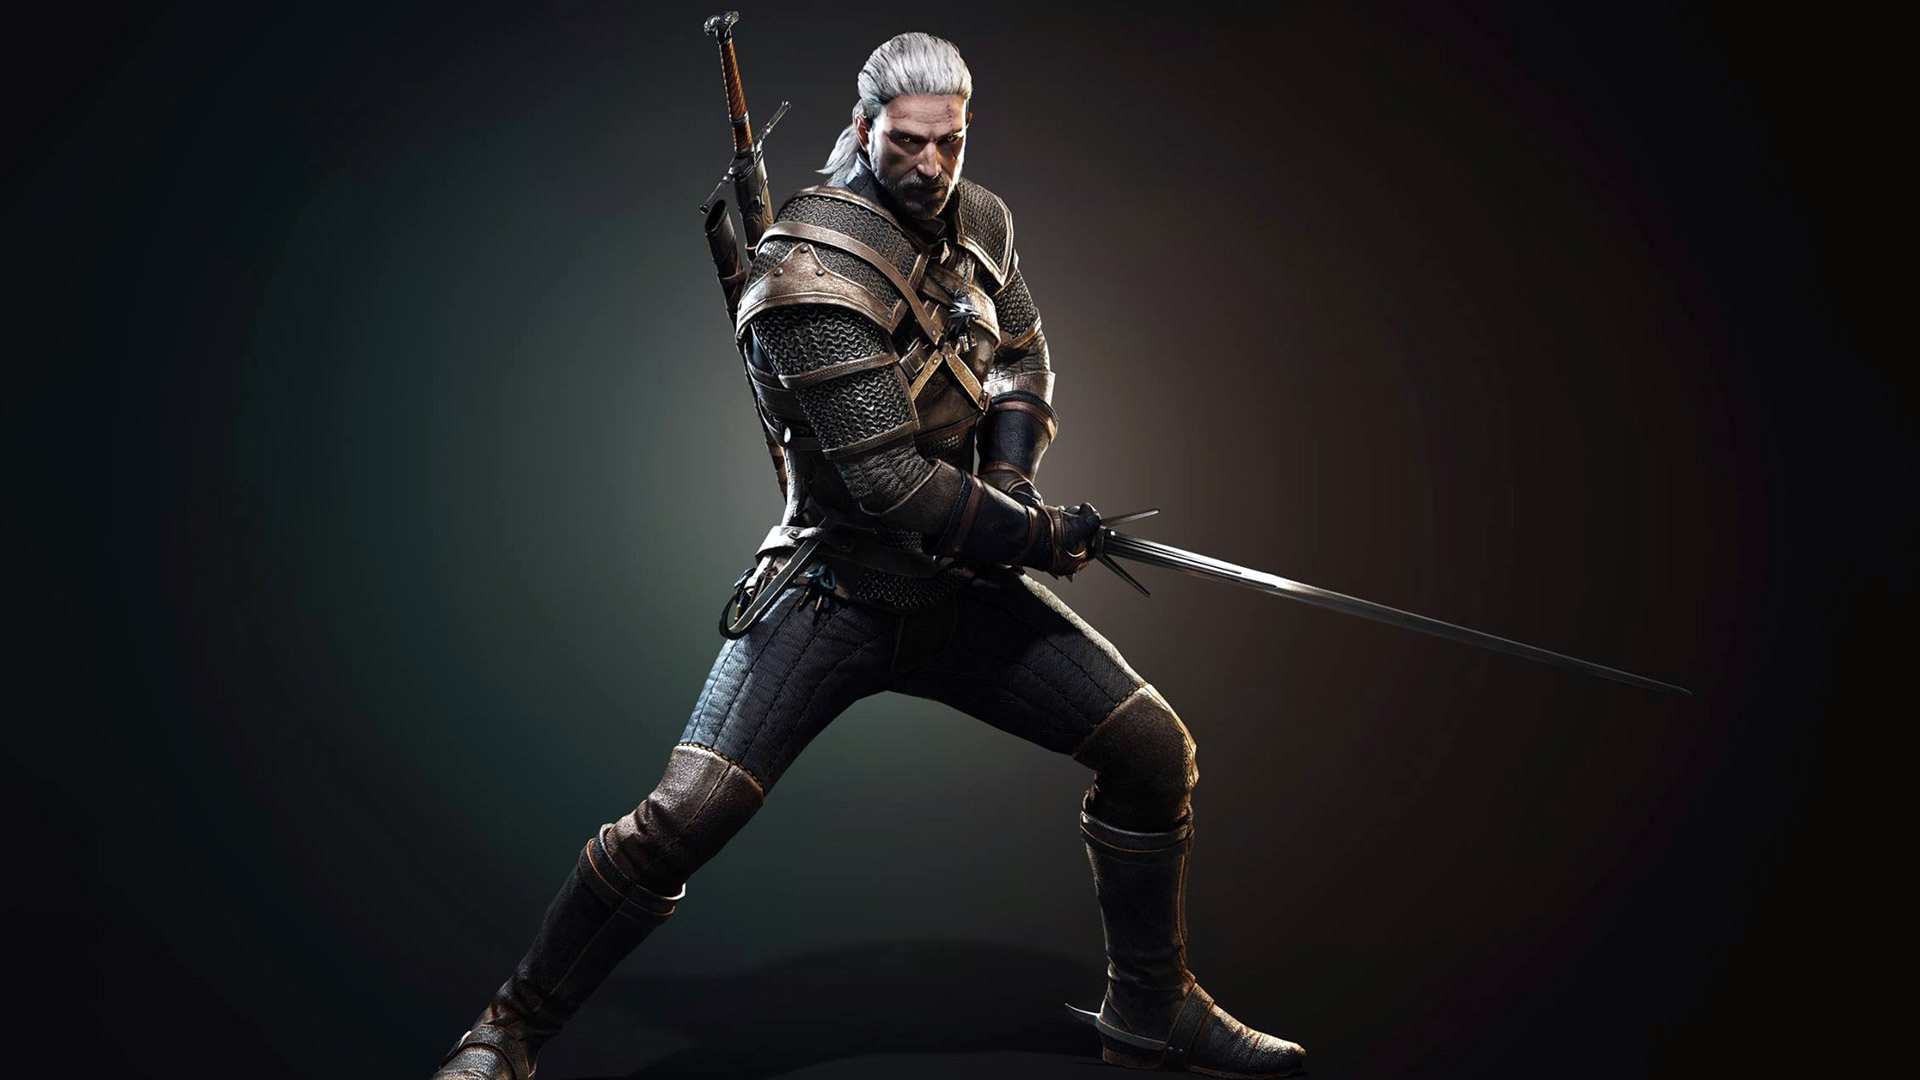 geralt-of-rivia-the-witcher-3-1920x1080.jpg